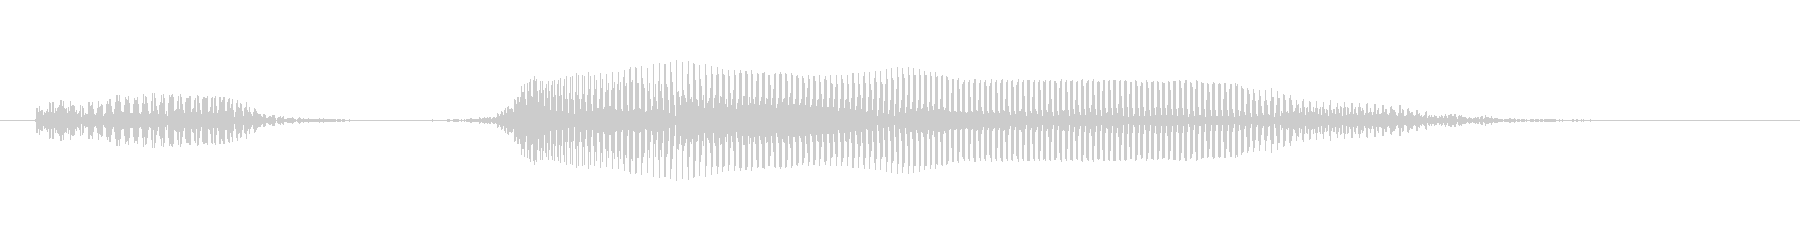 """Let's sing!"" 11-year-old boy's unreproduced waveform"